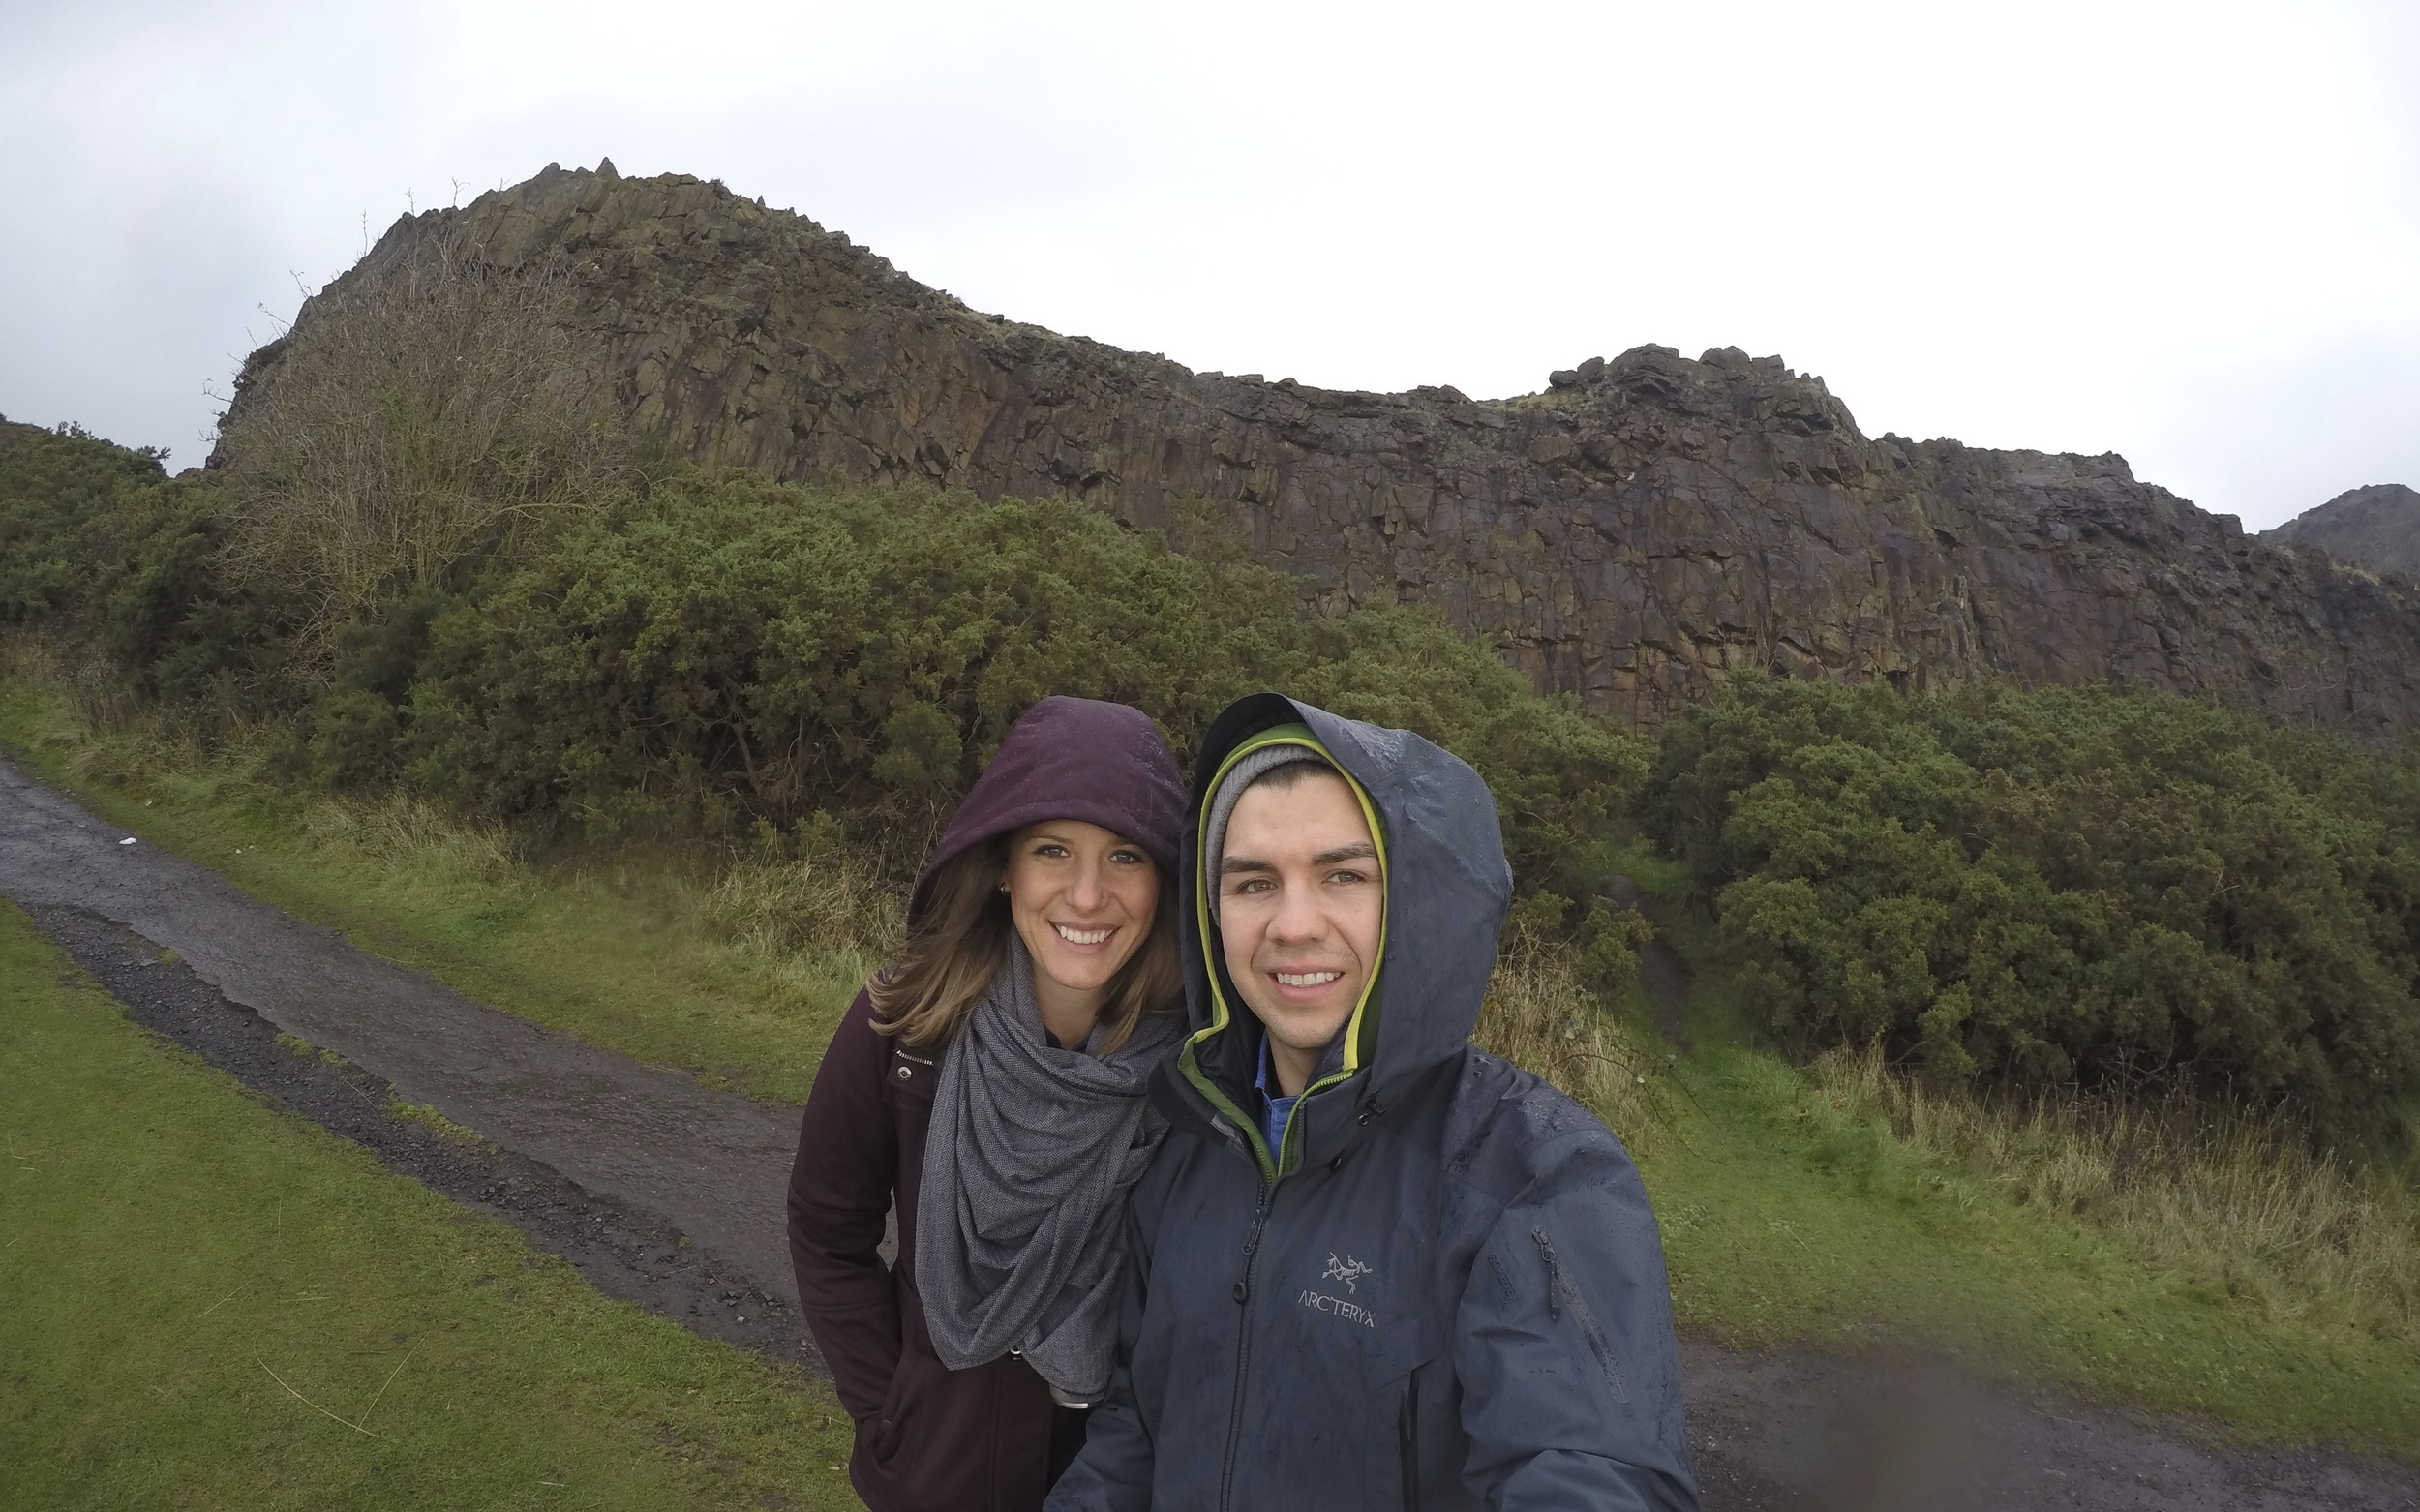 Starting our journey up Arthur's Seat - great way to keep warm!